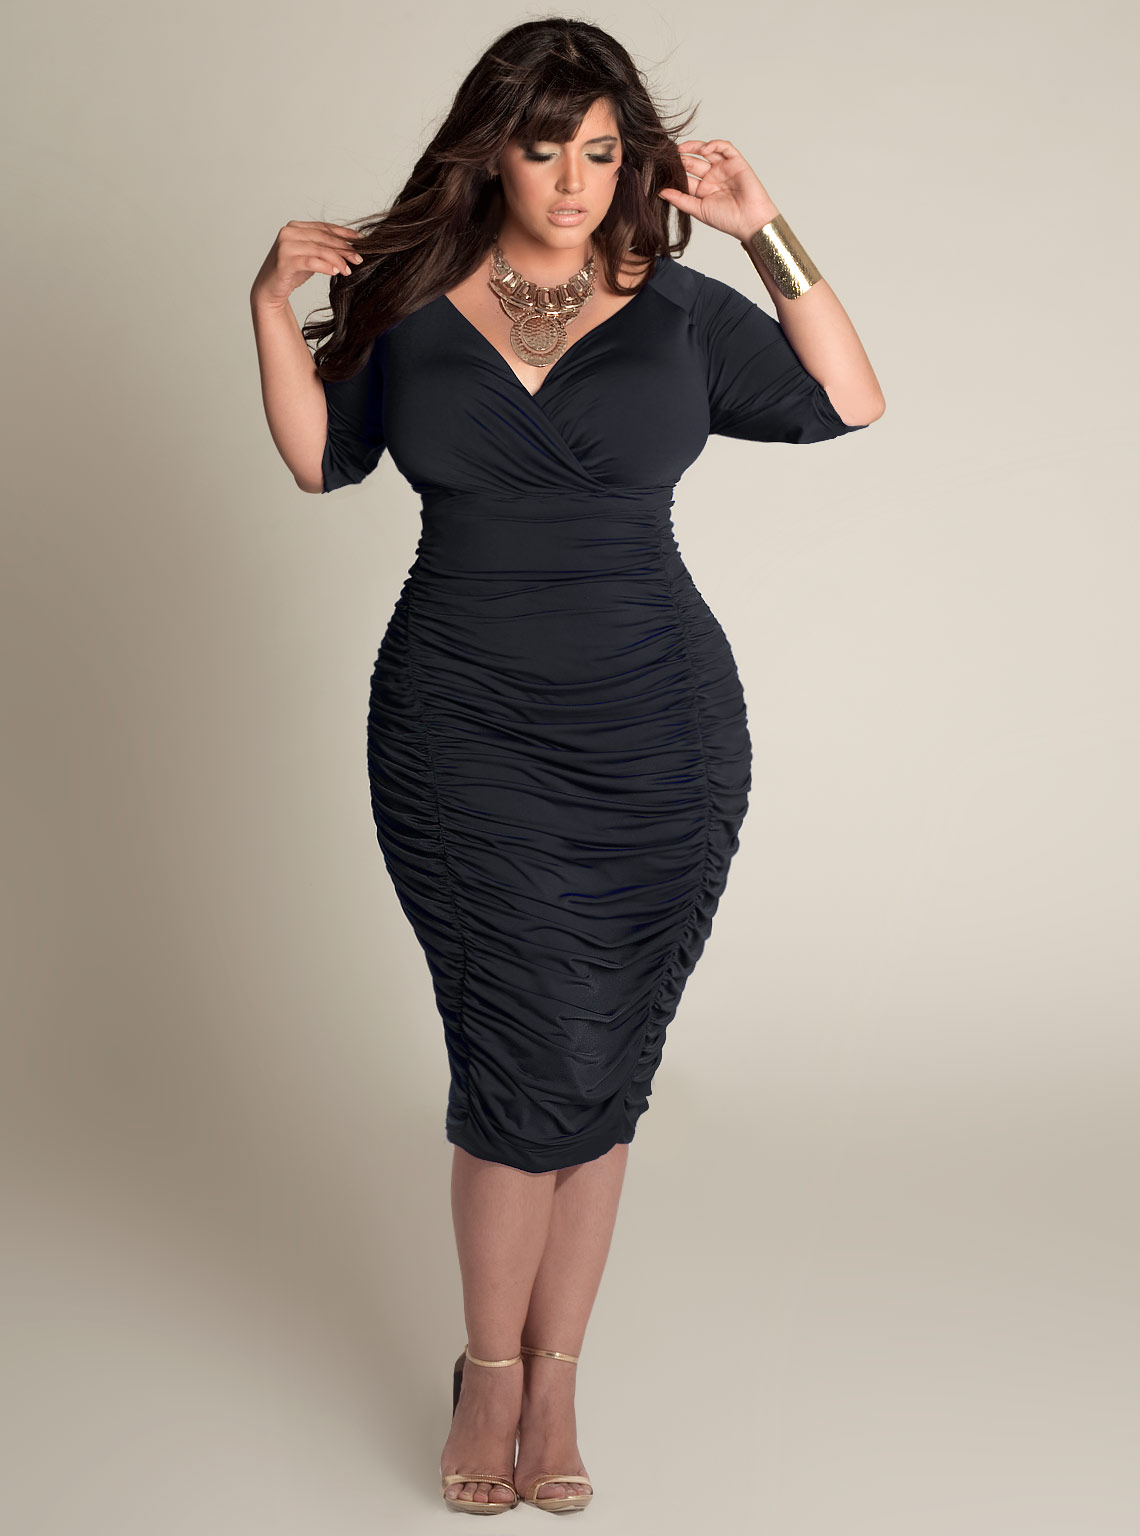 Plus Size Black Dresses  DressedUpGirlcom